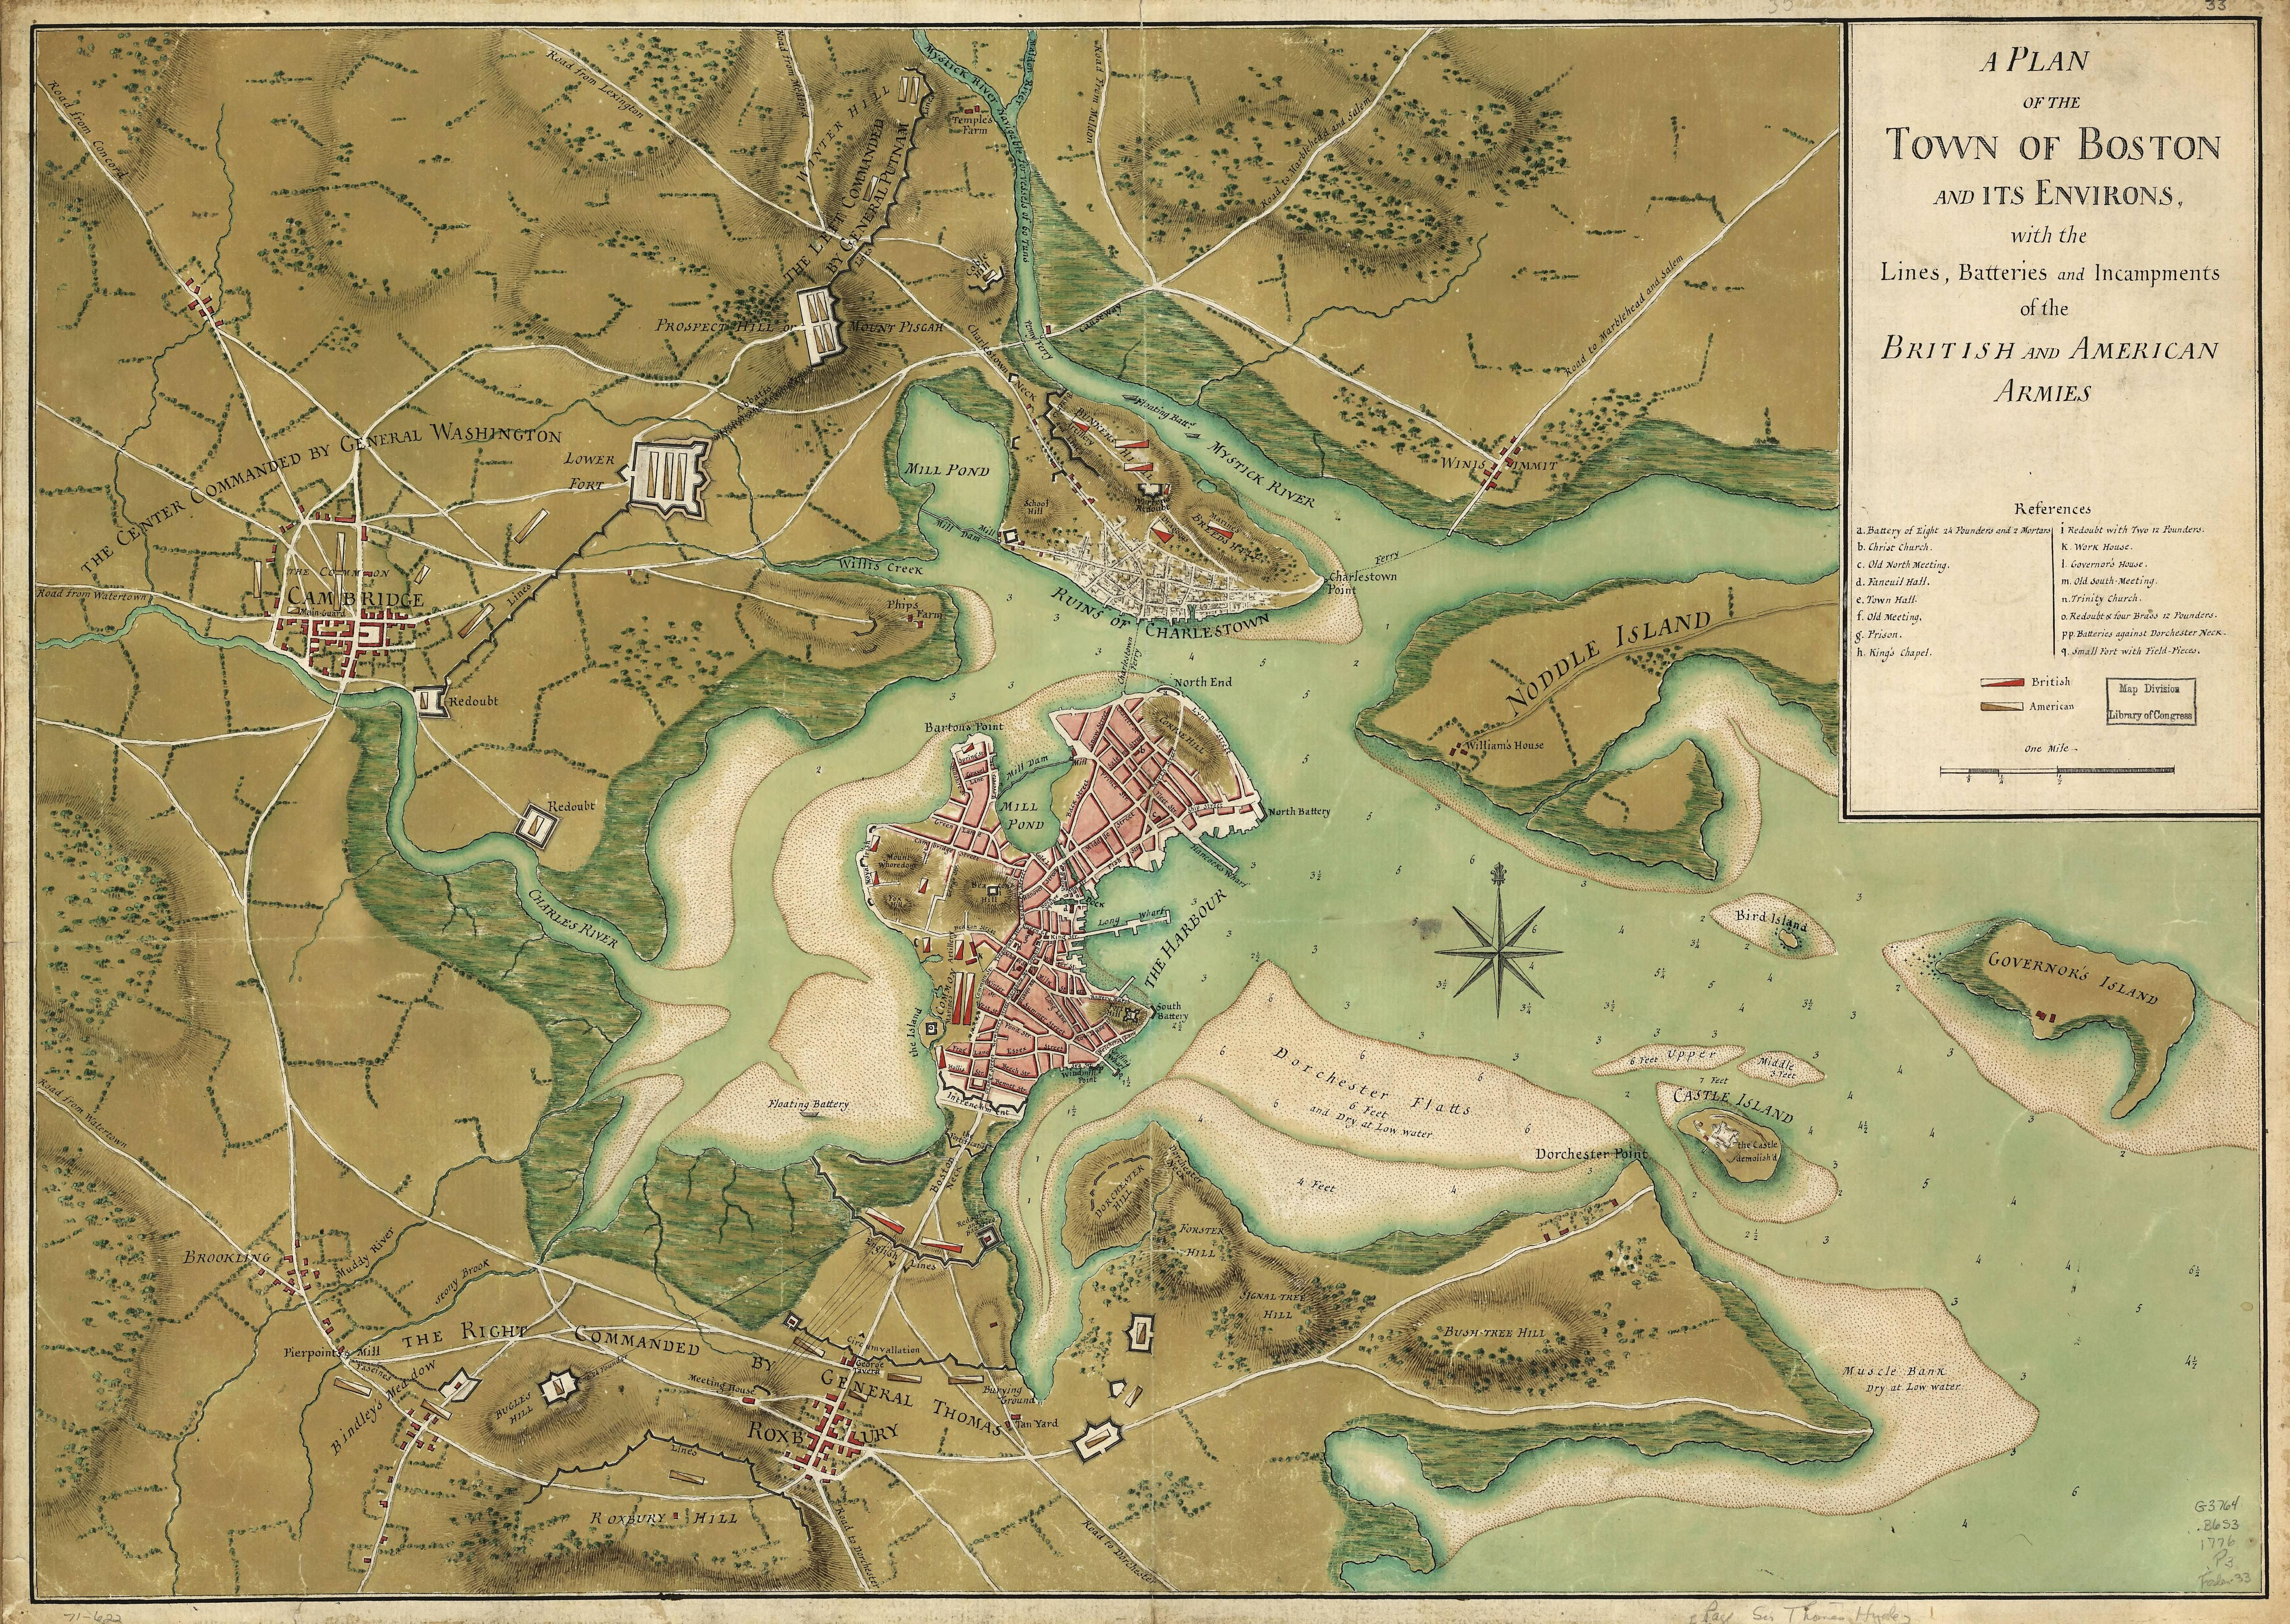 map of boston area 1776 1776 Map Of Boston And Surrounding Areas During The Siege Of map of boston area 1776